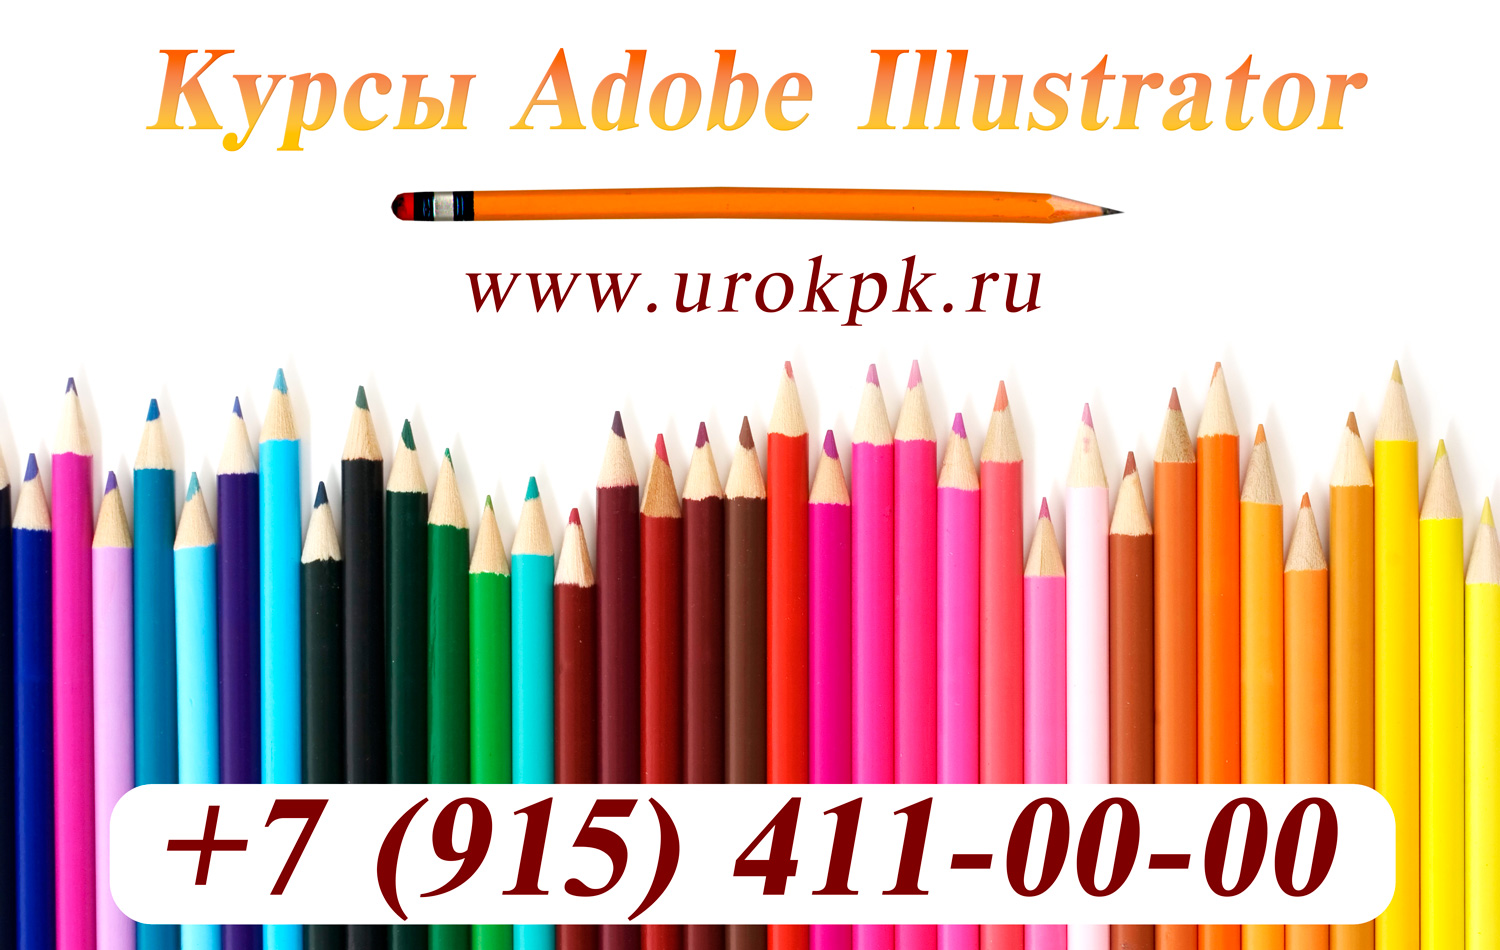 Курсы Adobe Illustrator